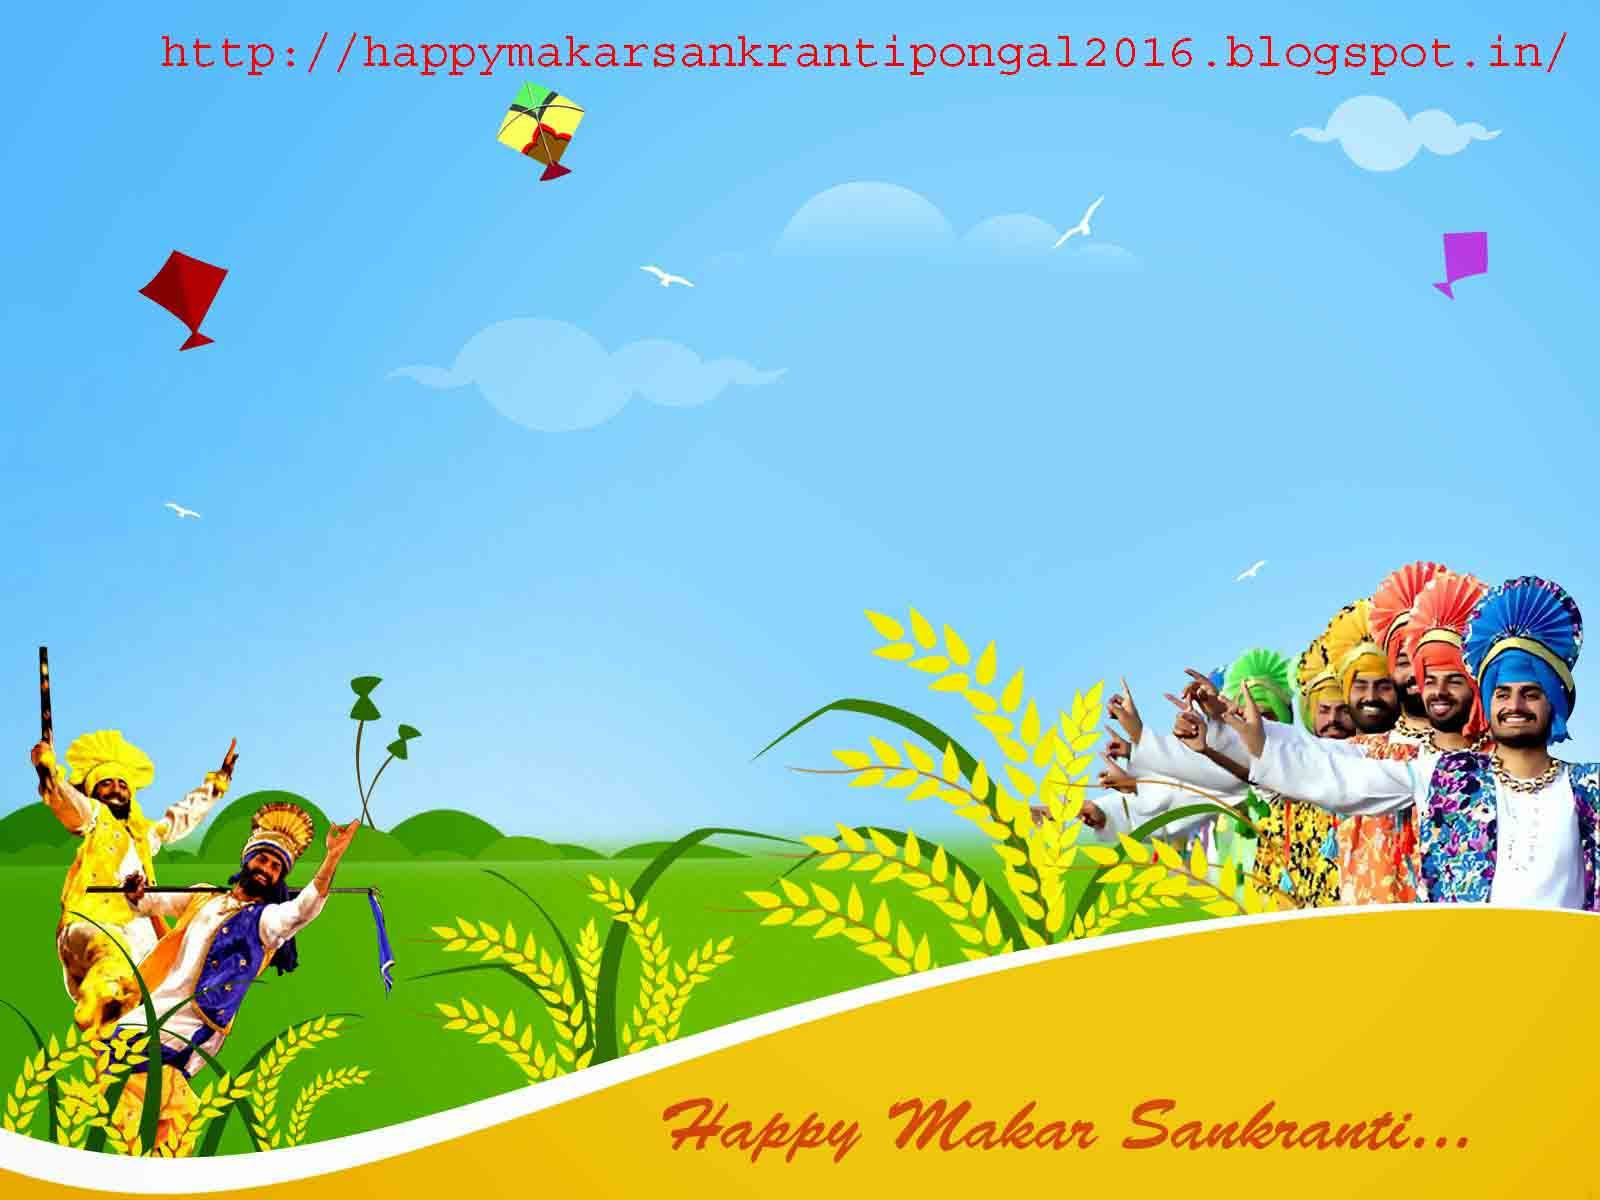 best ideas about makar sankranti images 17 best ideas about makar sankranti 2016 images makar sankranti greetings sankranti 2016 and inspirational shayari on life